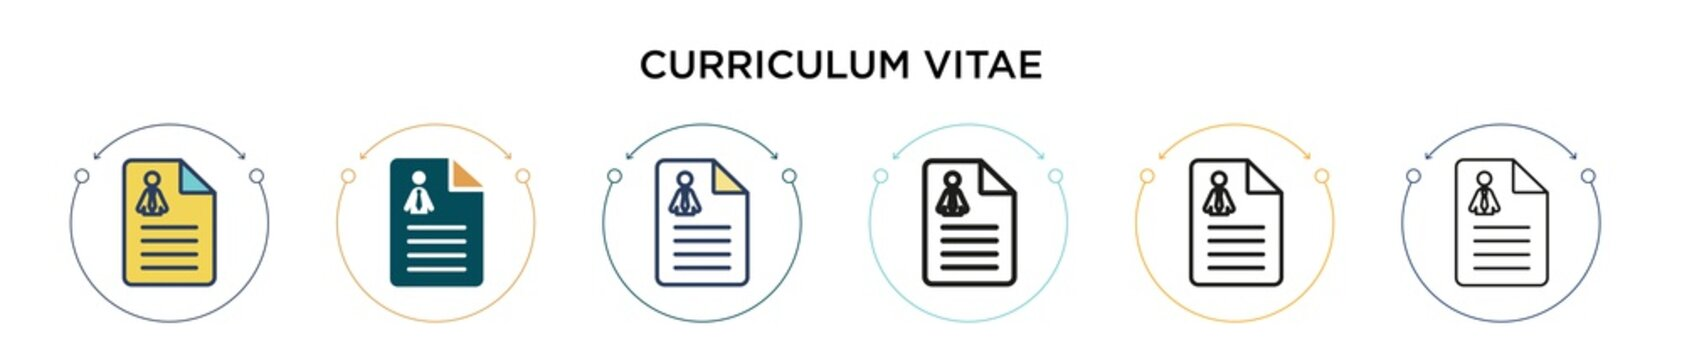 Curriculum vitae icon in filled, thin line, outline and stroke style. Vector illustration of two colored and black curriculum vitae vector icons designs can be used for mobile, ui, web